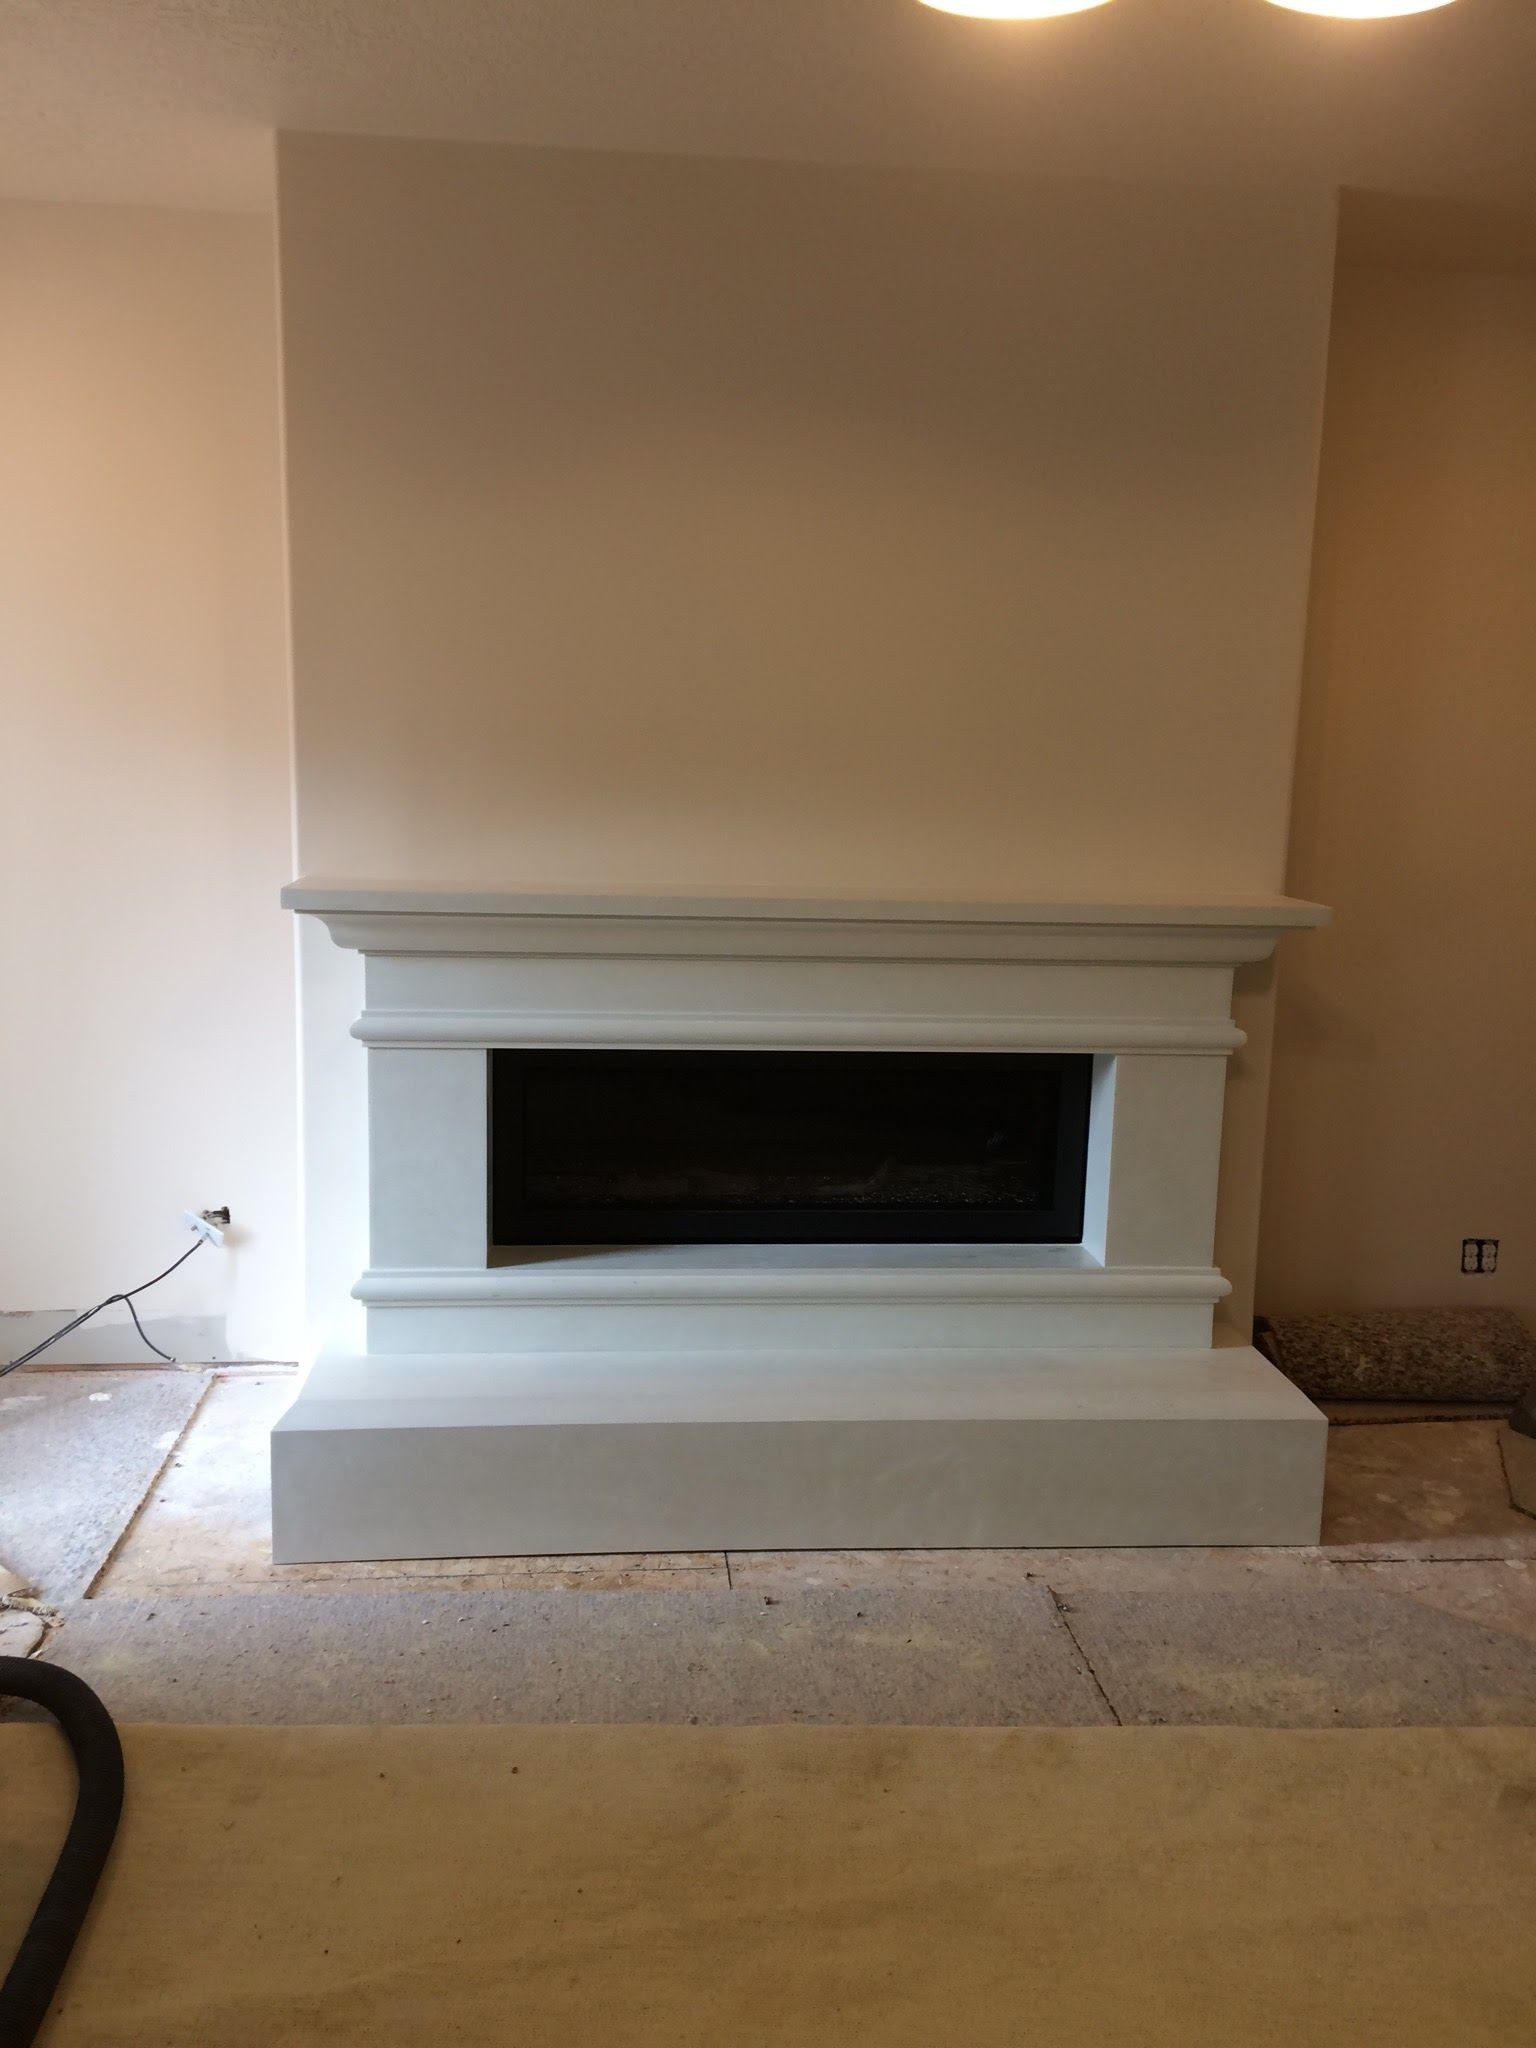 Traditional Style Mantel For Linear Fireplace Insert Stonemountaincastingsfavs Linear Fireplace Build A Fireplace Fireplace